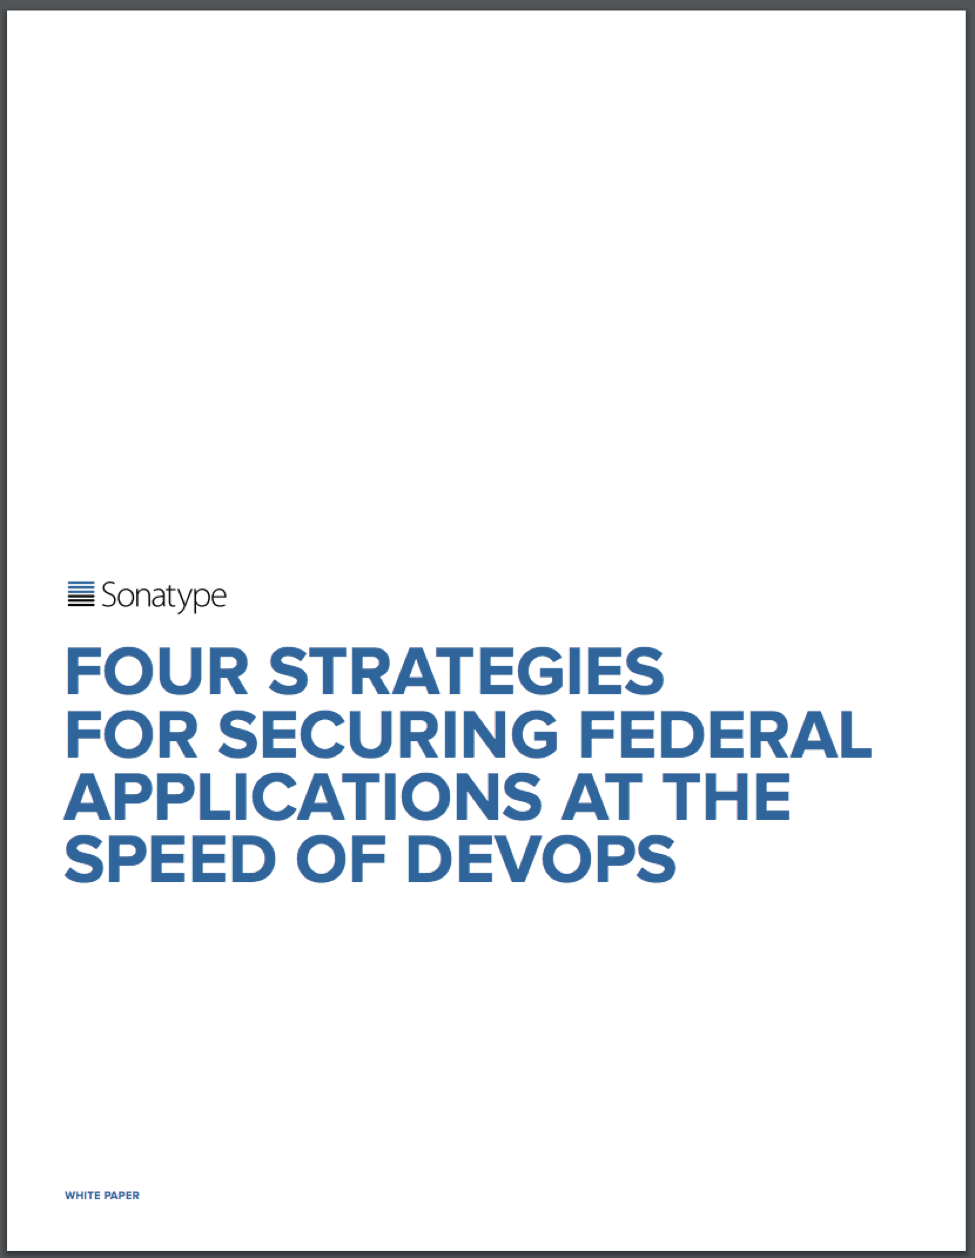 four-strategies-for-securing-federal-applications-at-the-speed-of-devops.png